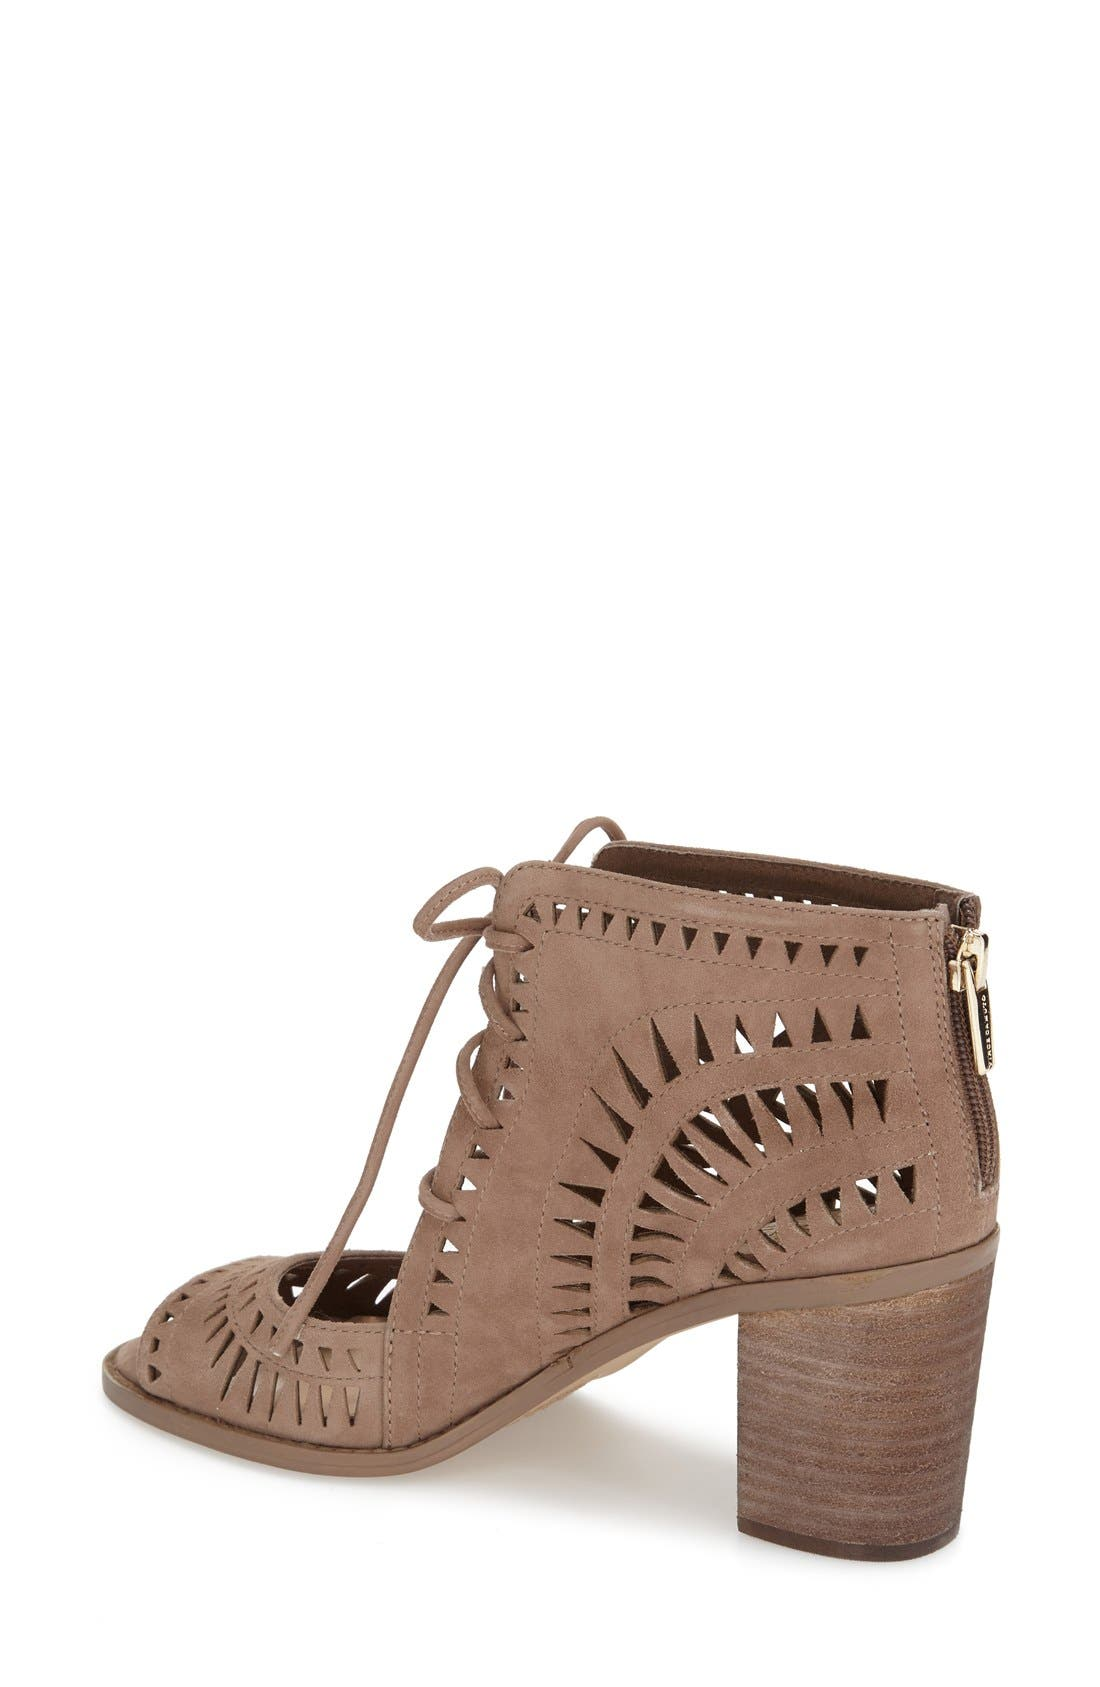 Alternate Image 2  - Vince Camuto 'Tarita' Cutout Lace-Up Sandal (Women) (Nordstrom Exclusive)